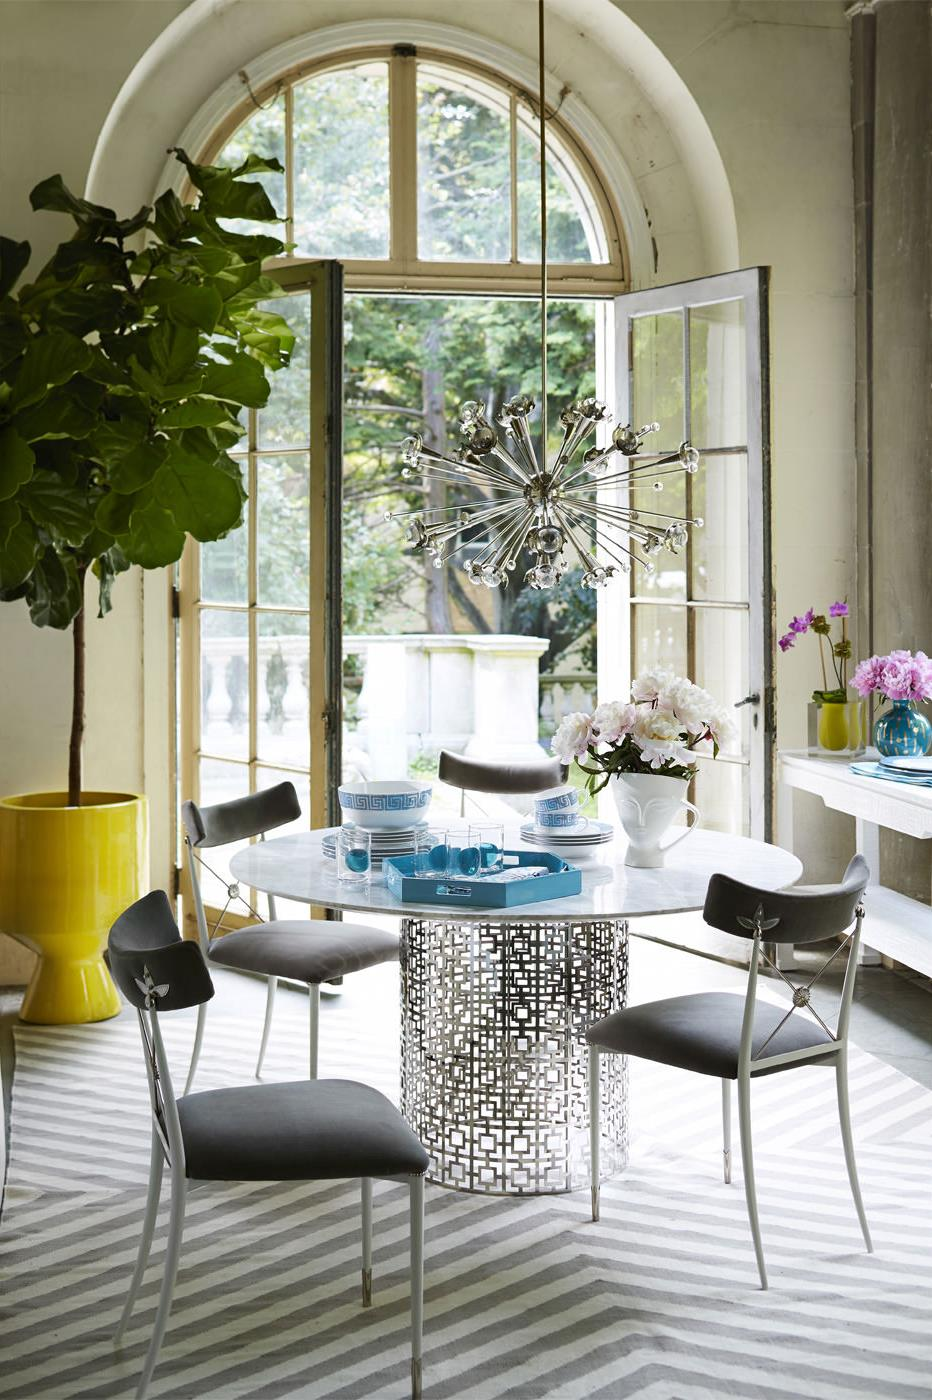 Dining room featuring items from Jonathan Adler